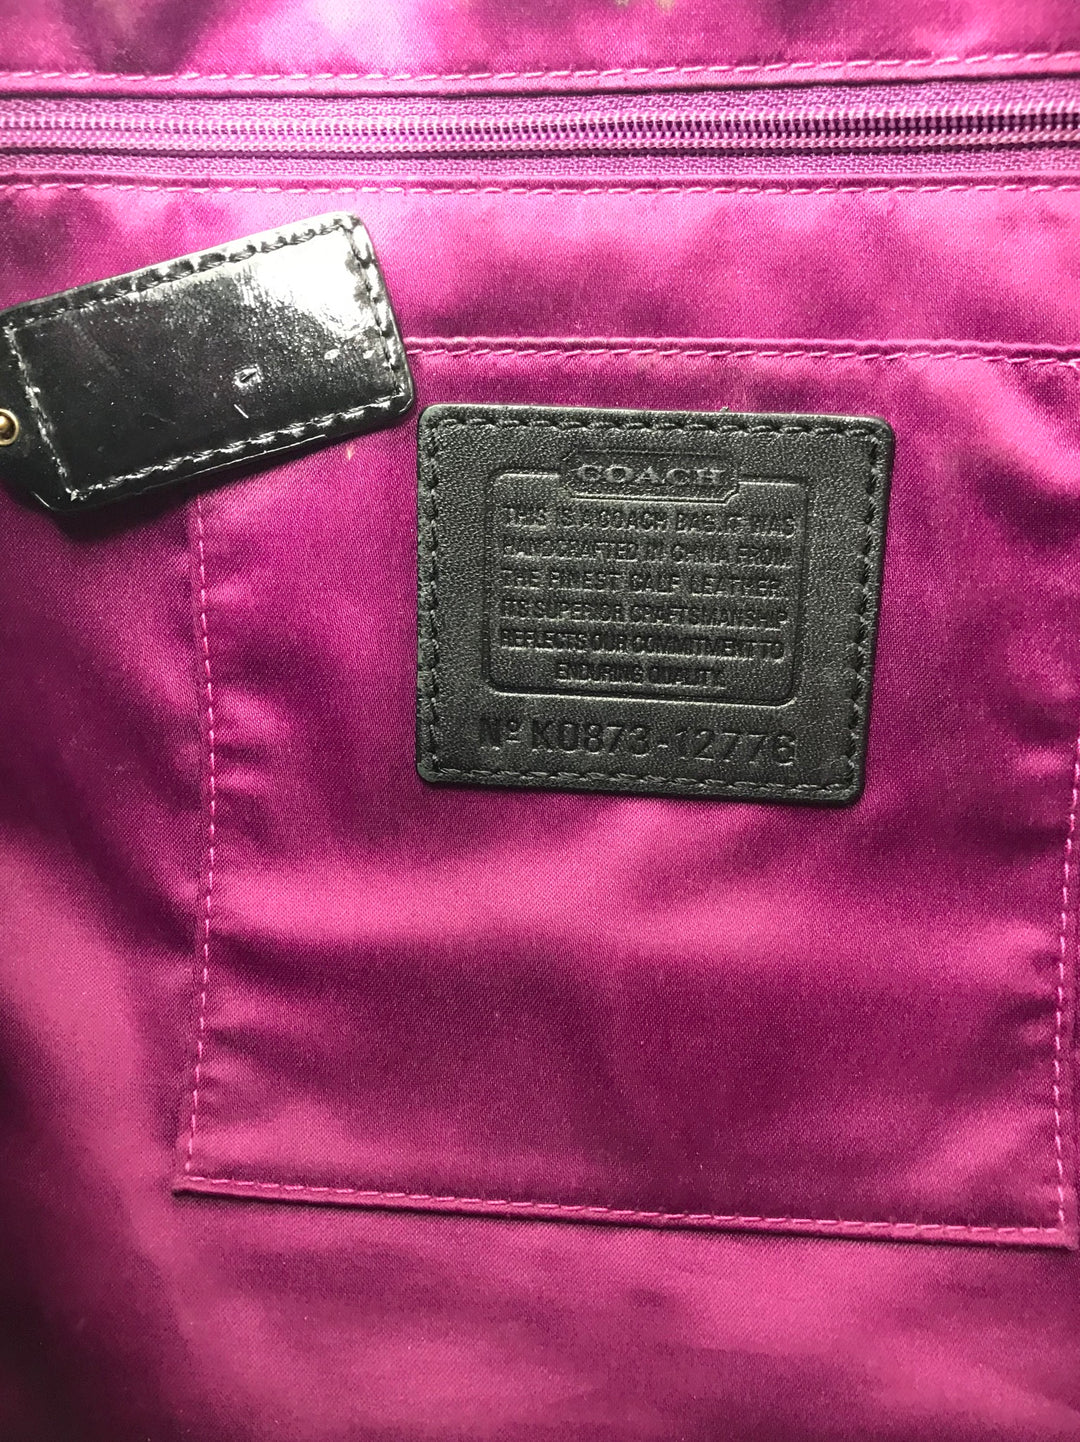 Photo #5 - BRAND: COACH <BR>STYLE: HANDBAG DESIGNER <BR>COLOR: BLACK <BR>SIZE: LARGE <BR>SKU: 262-26275-64721<BR>GENTLE WEAR SHOWS, CRACKS AROUND THE EDGES OF THE STRAP AND SOME STAIN SPOTS ON THE INTERIOR LINING. OVERALL IN GOOD SHAPE AND CONDITION. <BR>DESIGNER BRAND - FINAL SALE